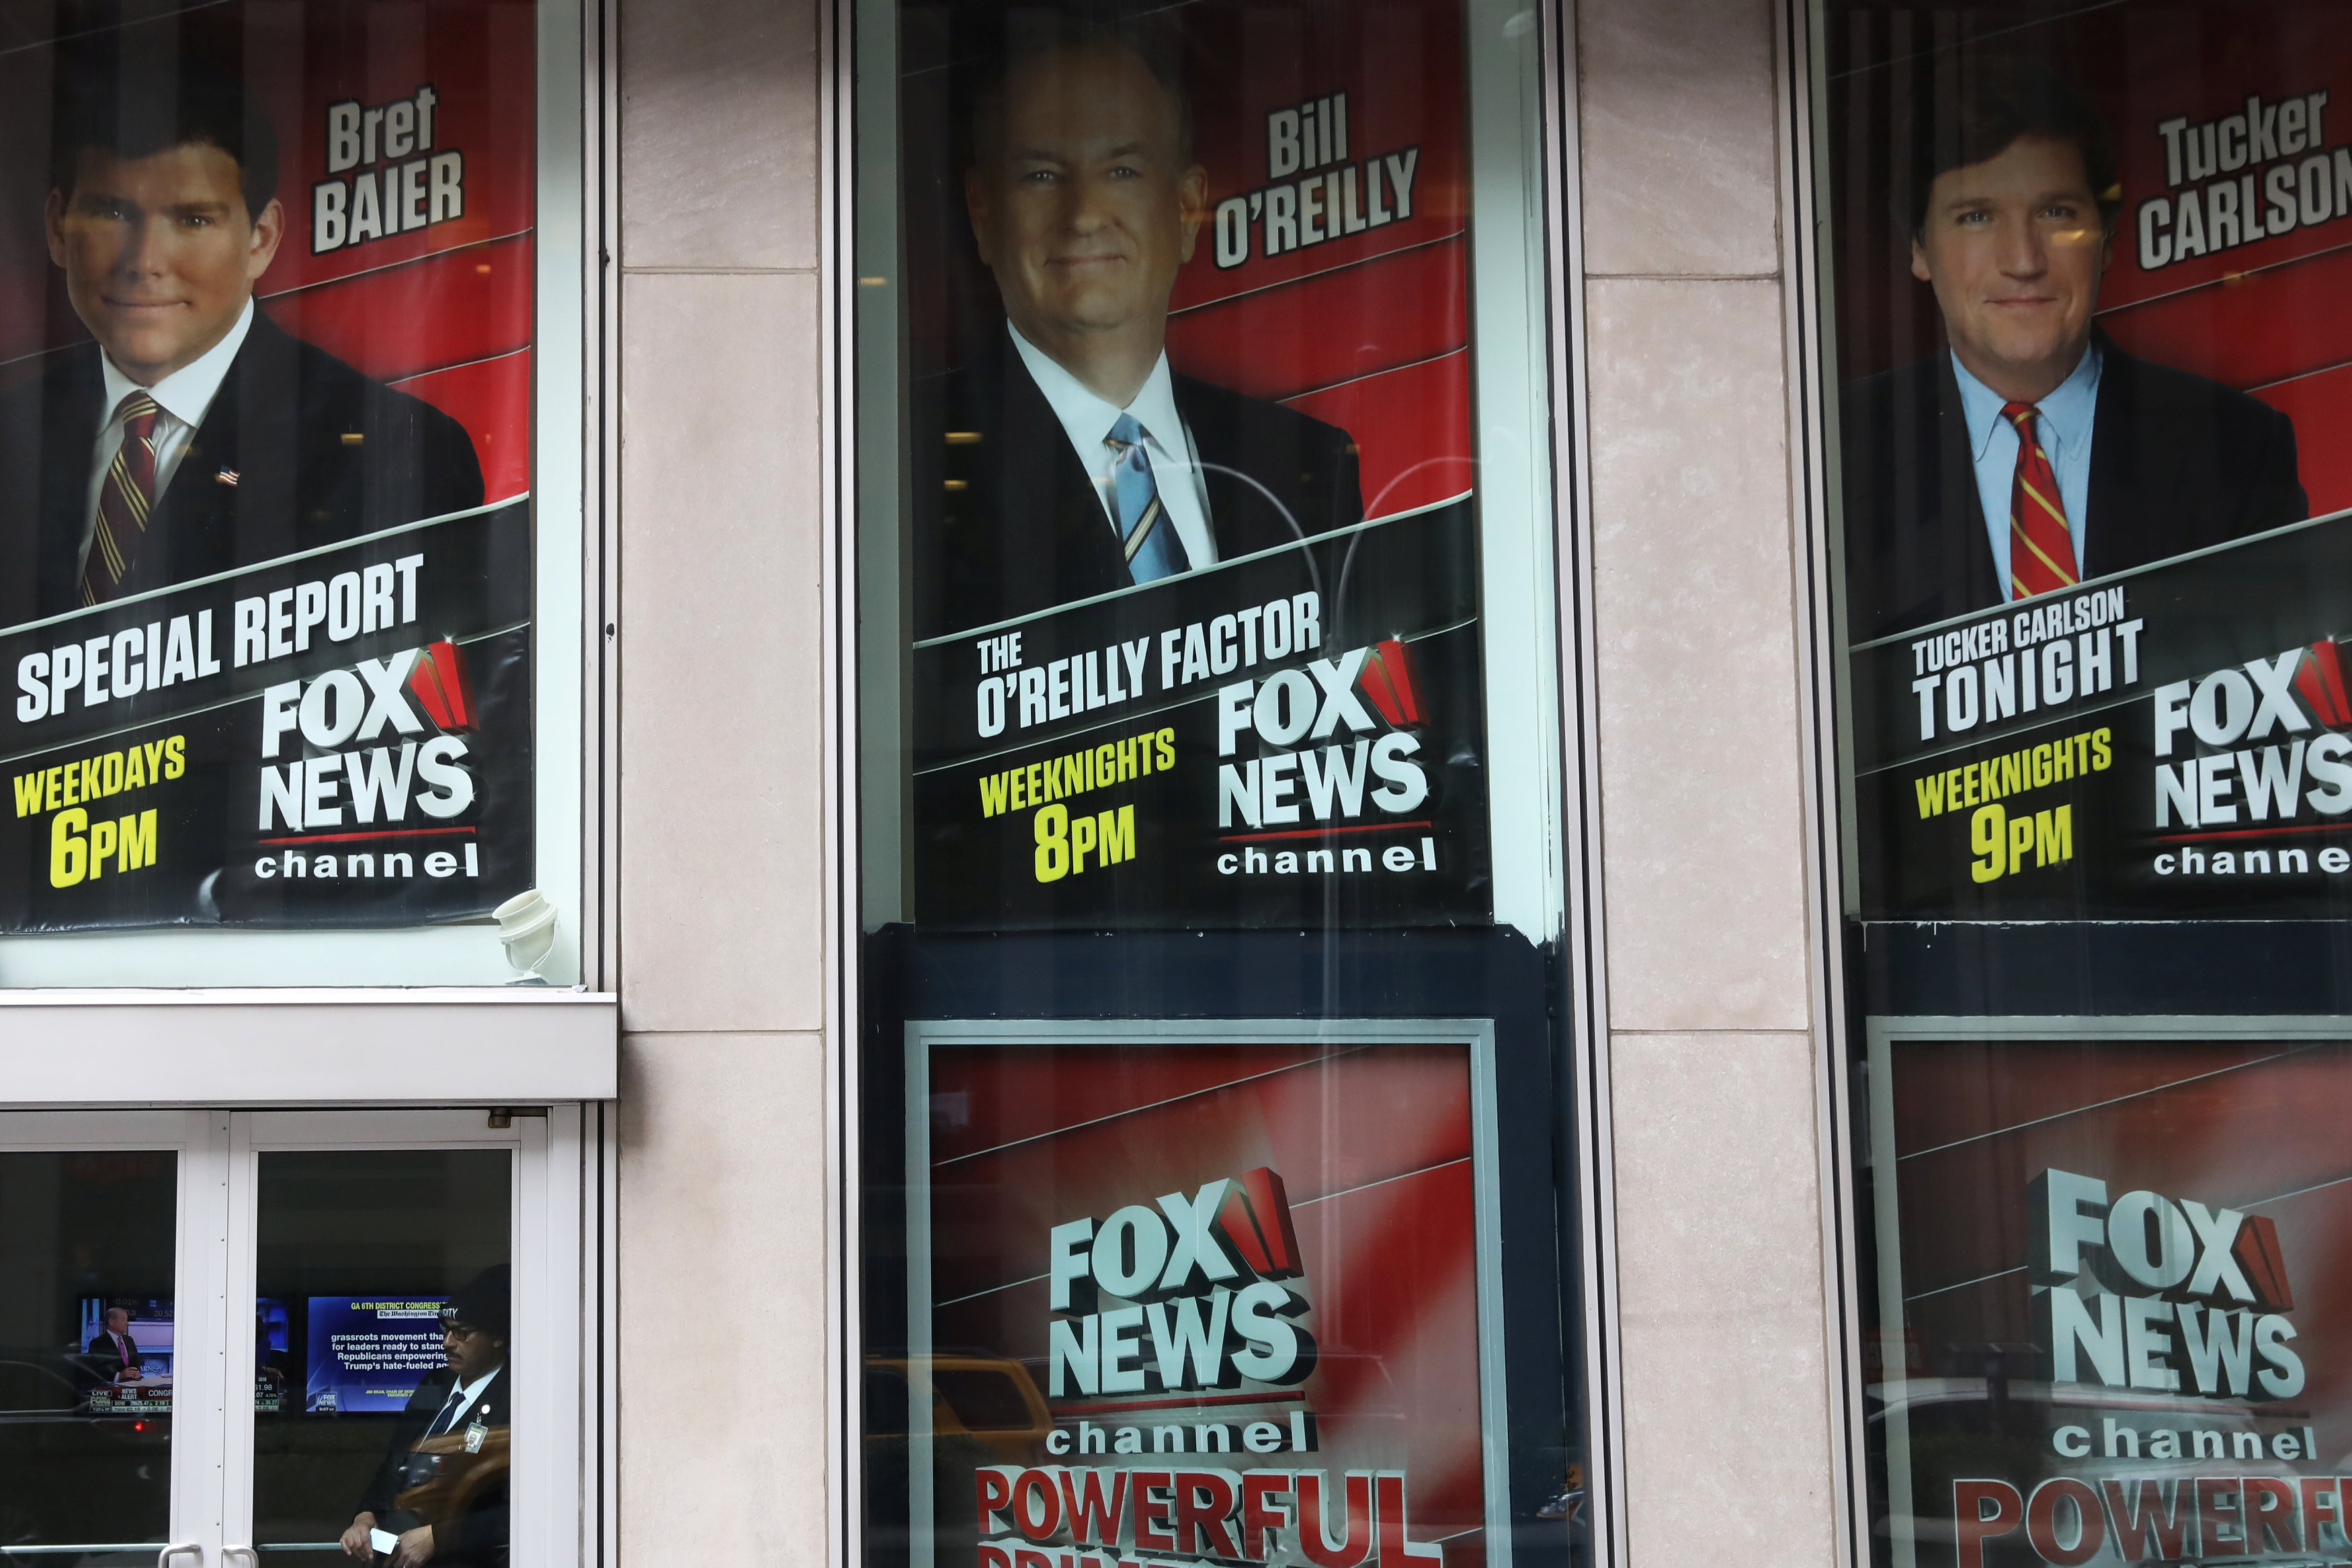 Posters featuring Fox News talent, including Bill O'Reilly, outside the News Corporation headquarters in New York. (REUTERS/Shannon Stapleton)